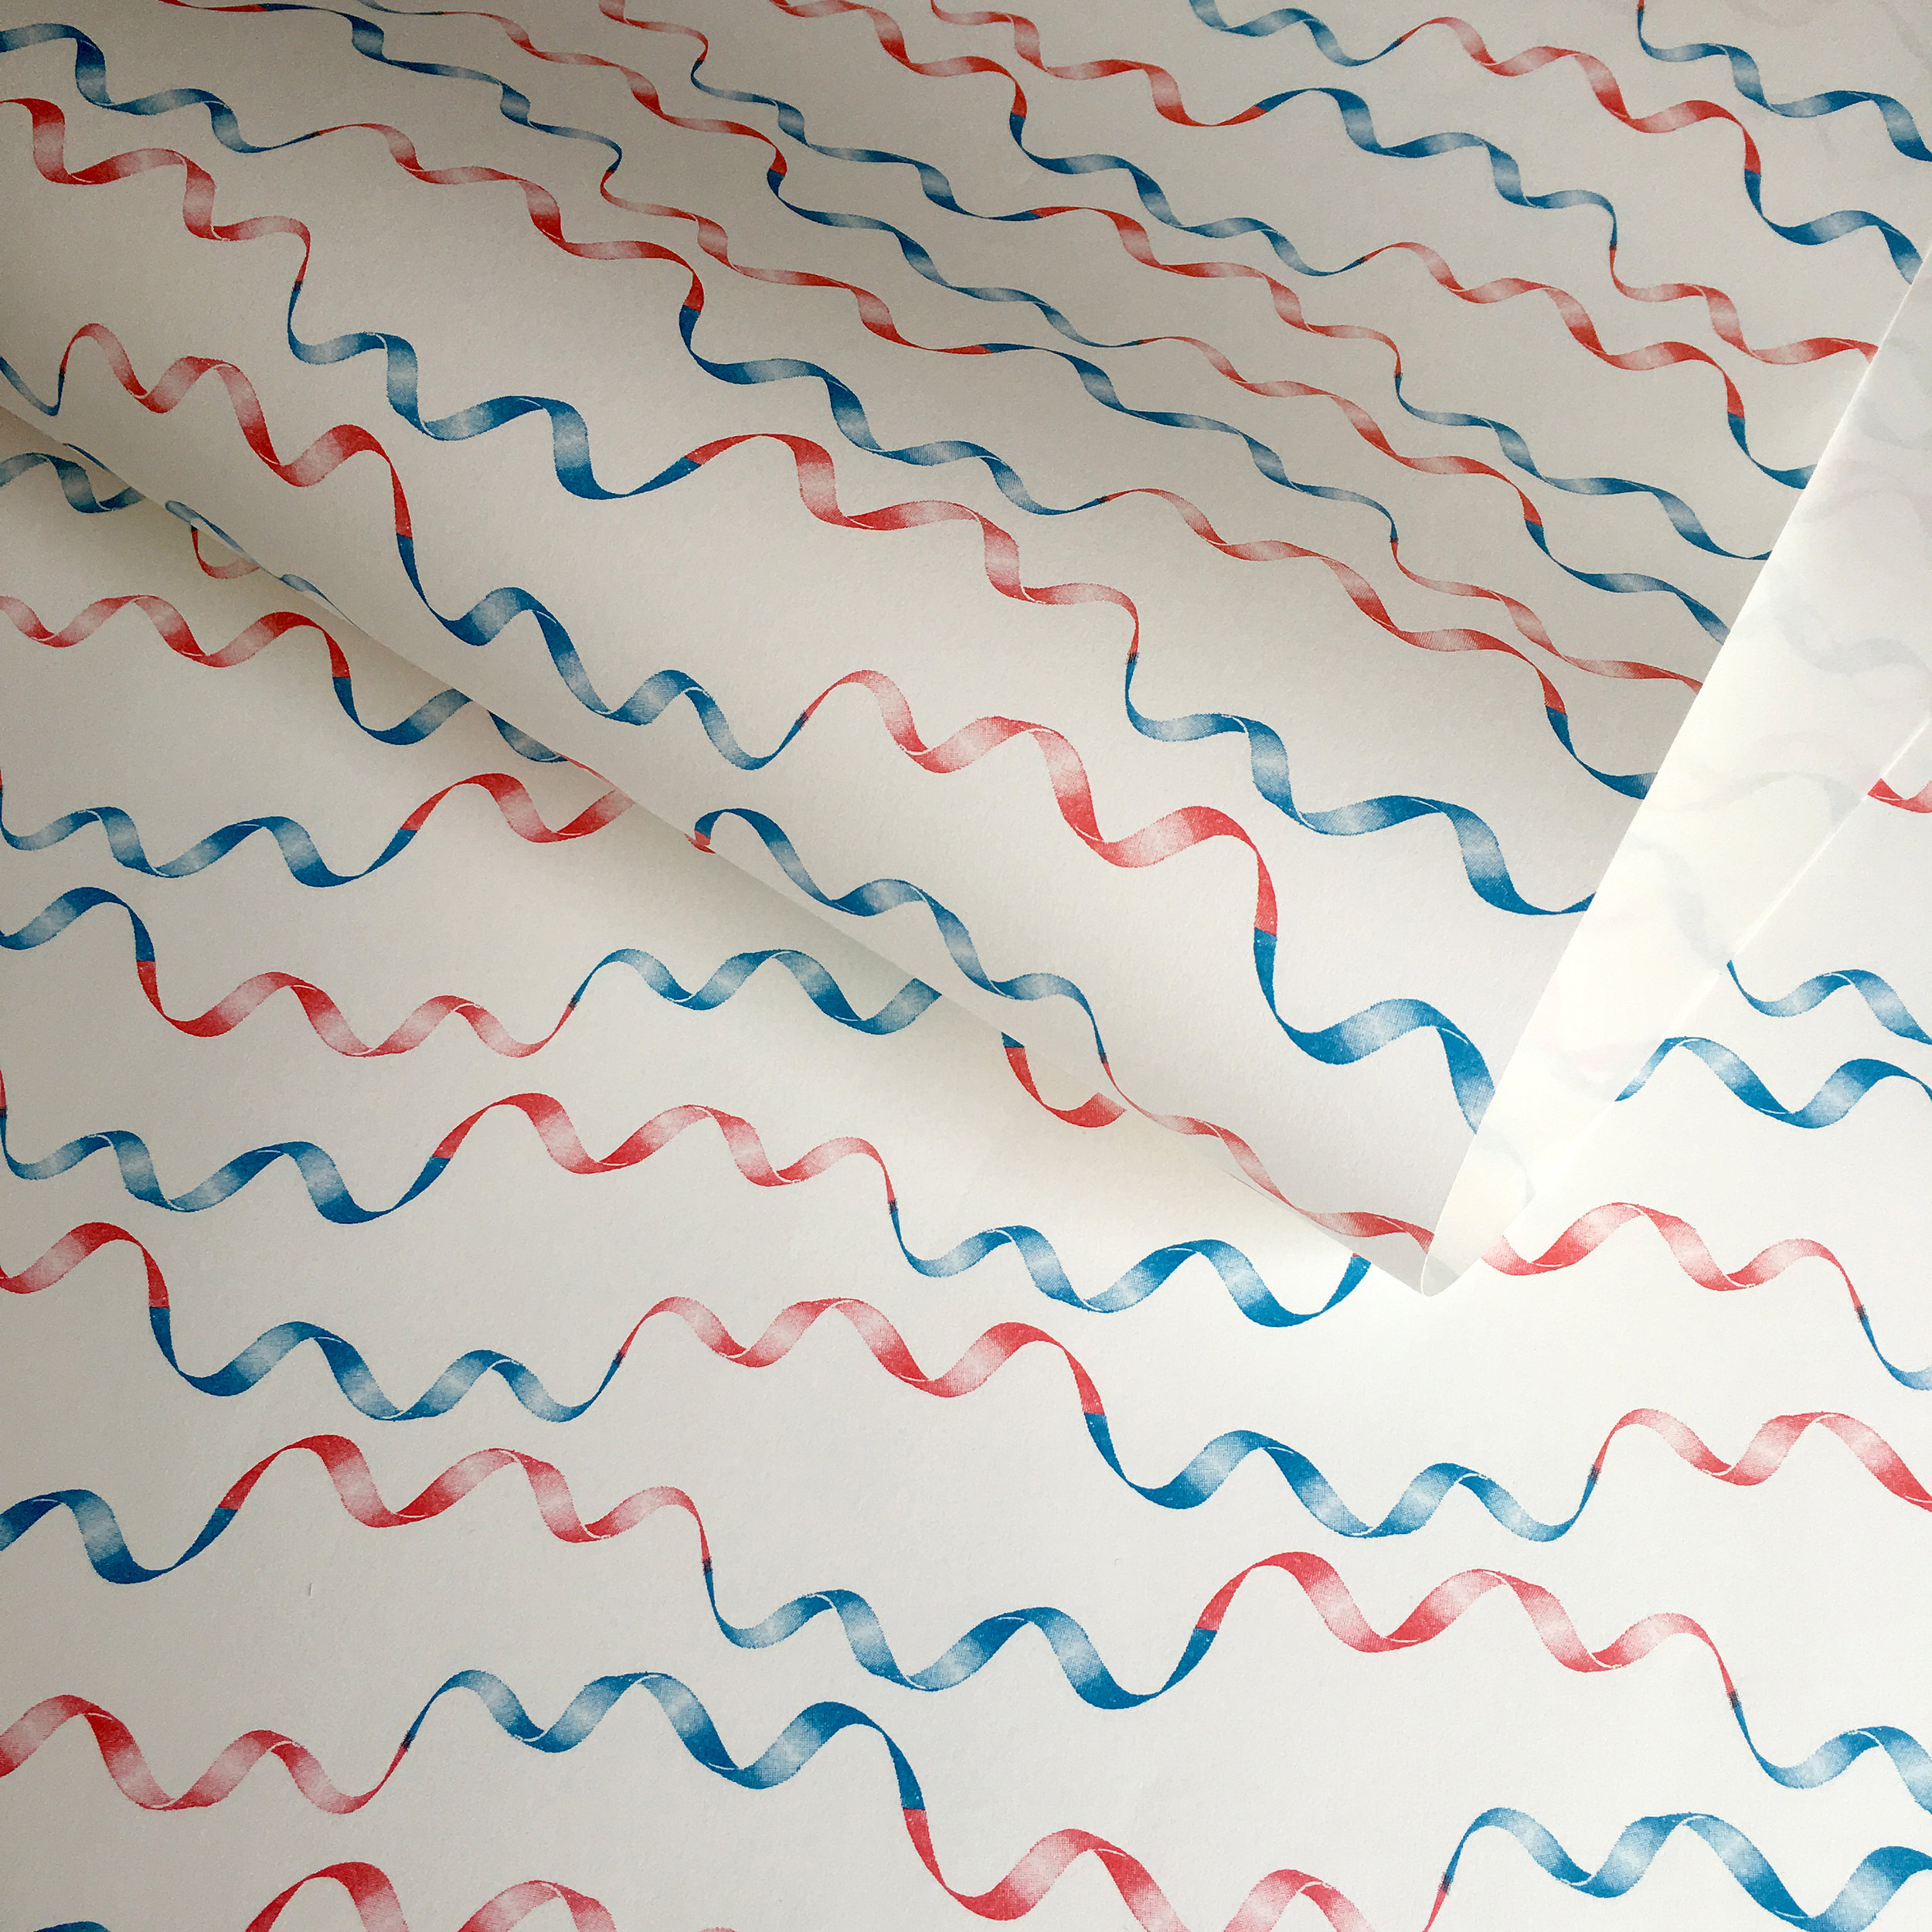 Wrapping paper, retro ribbon red/blue: WP_RRRB_01